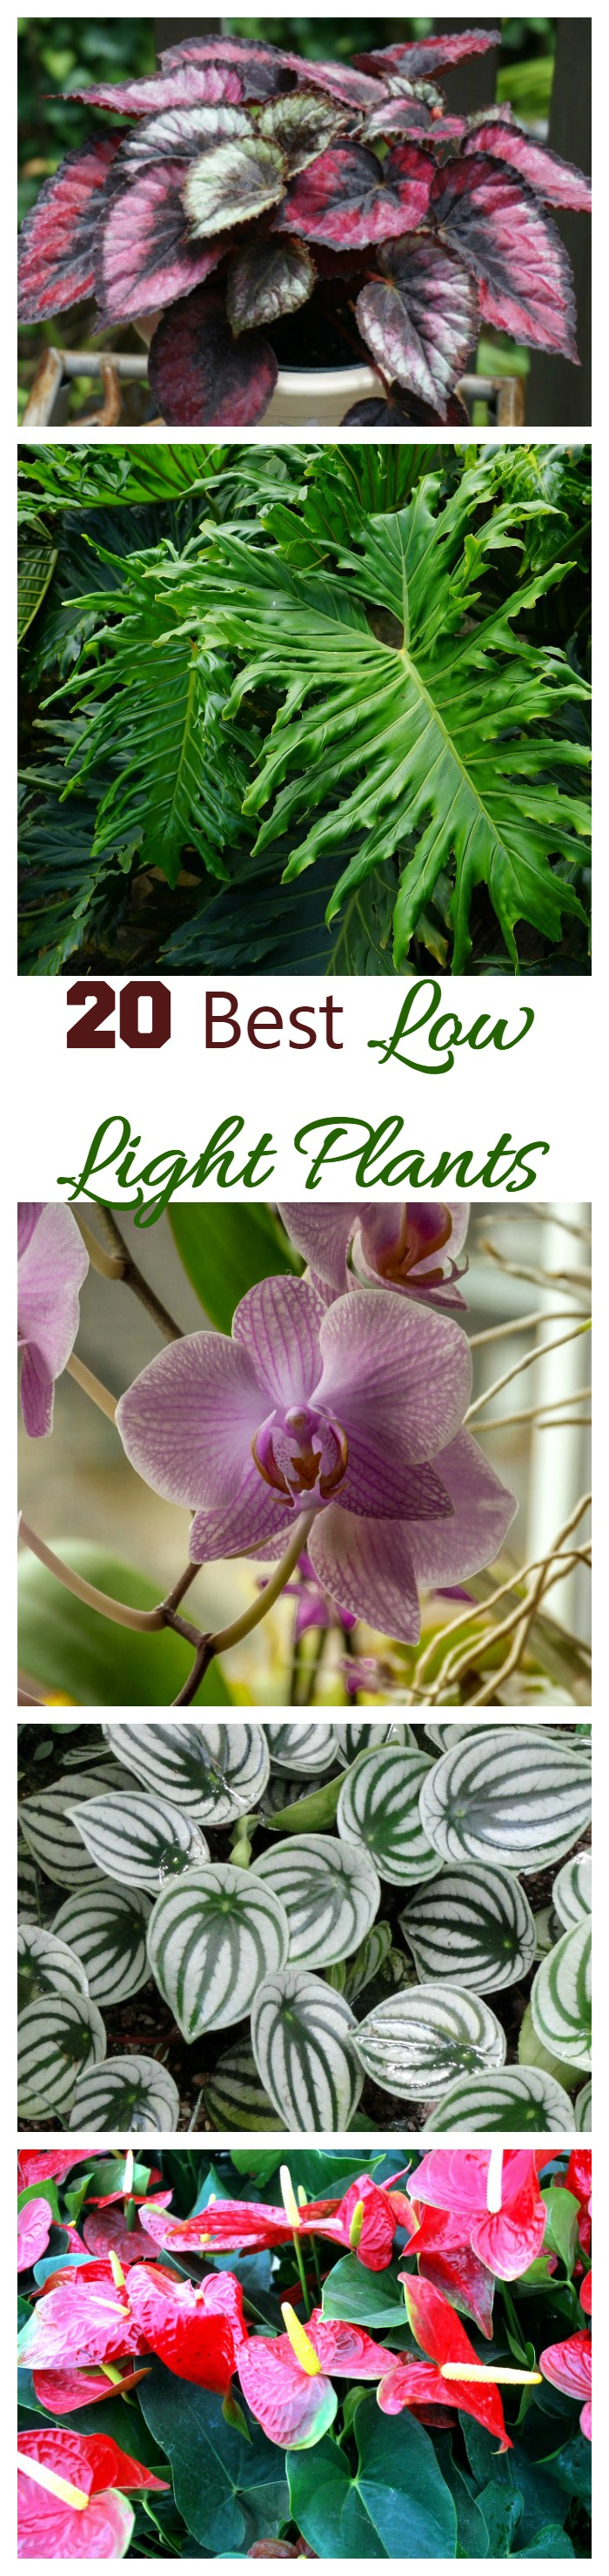 Indoor Plants For Low Light Low Light Indoor Plants House Plants That Thrive In Lower Light